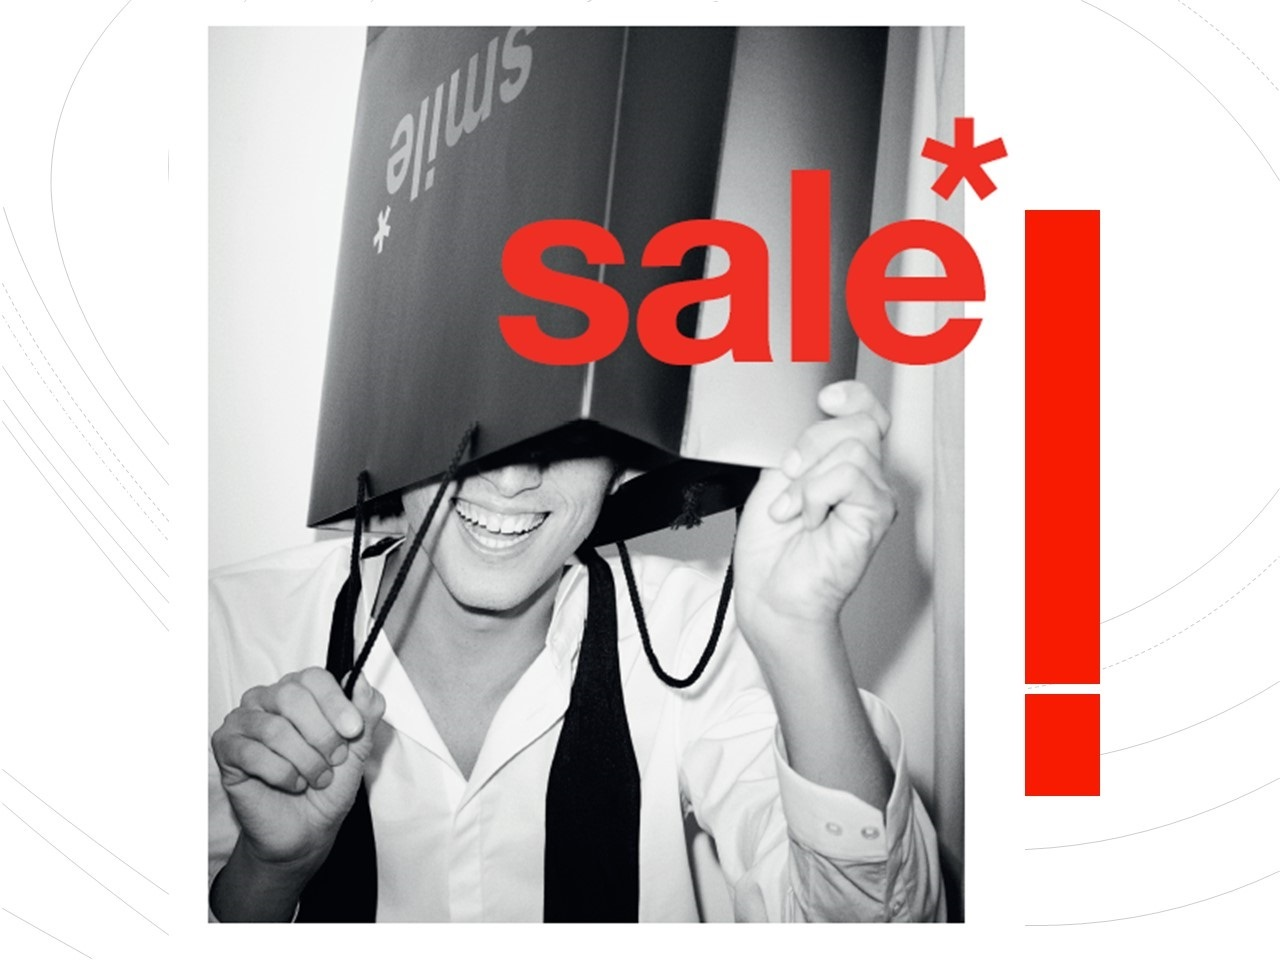 SALE up to 50% at Celio*